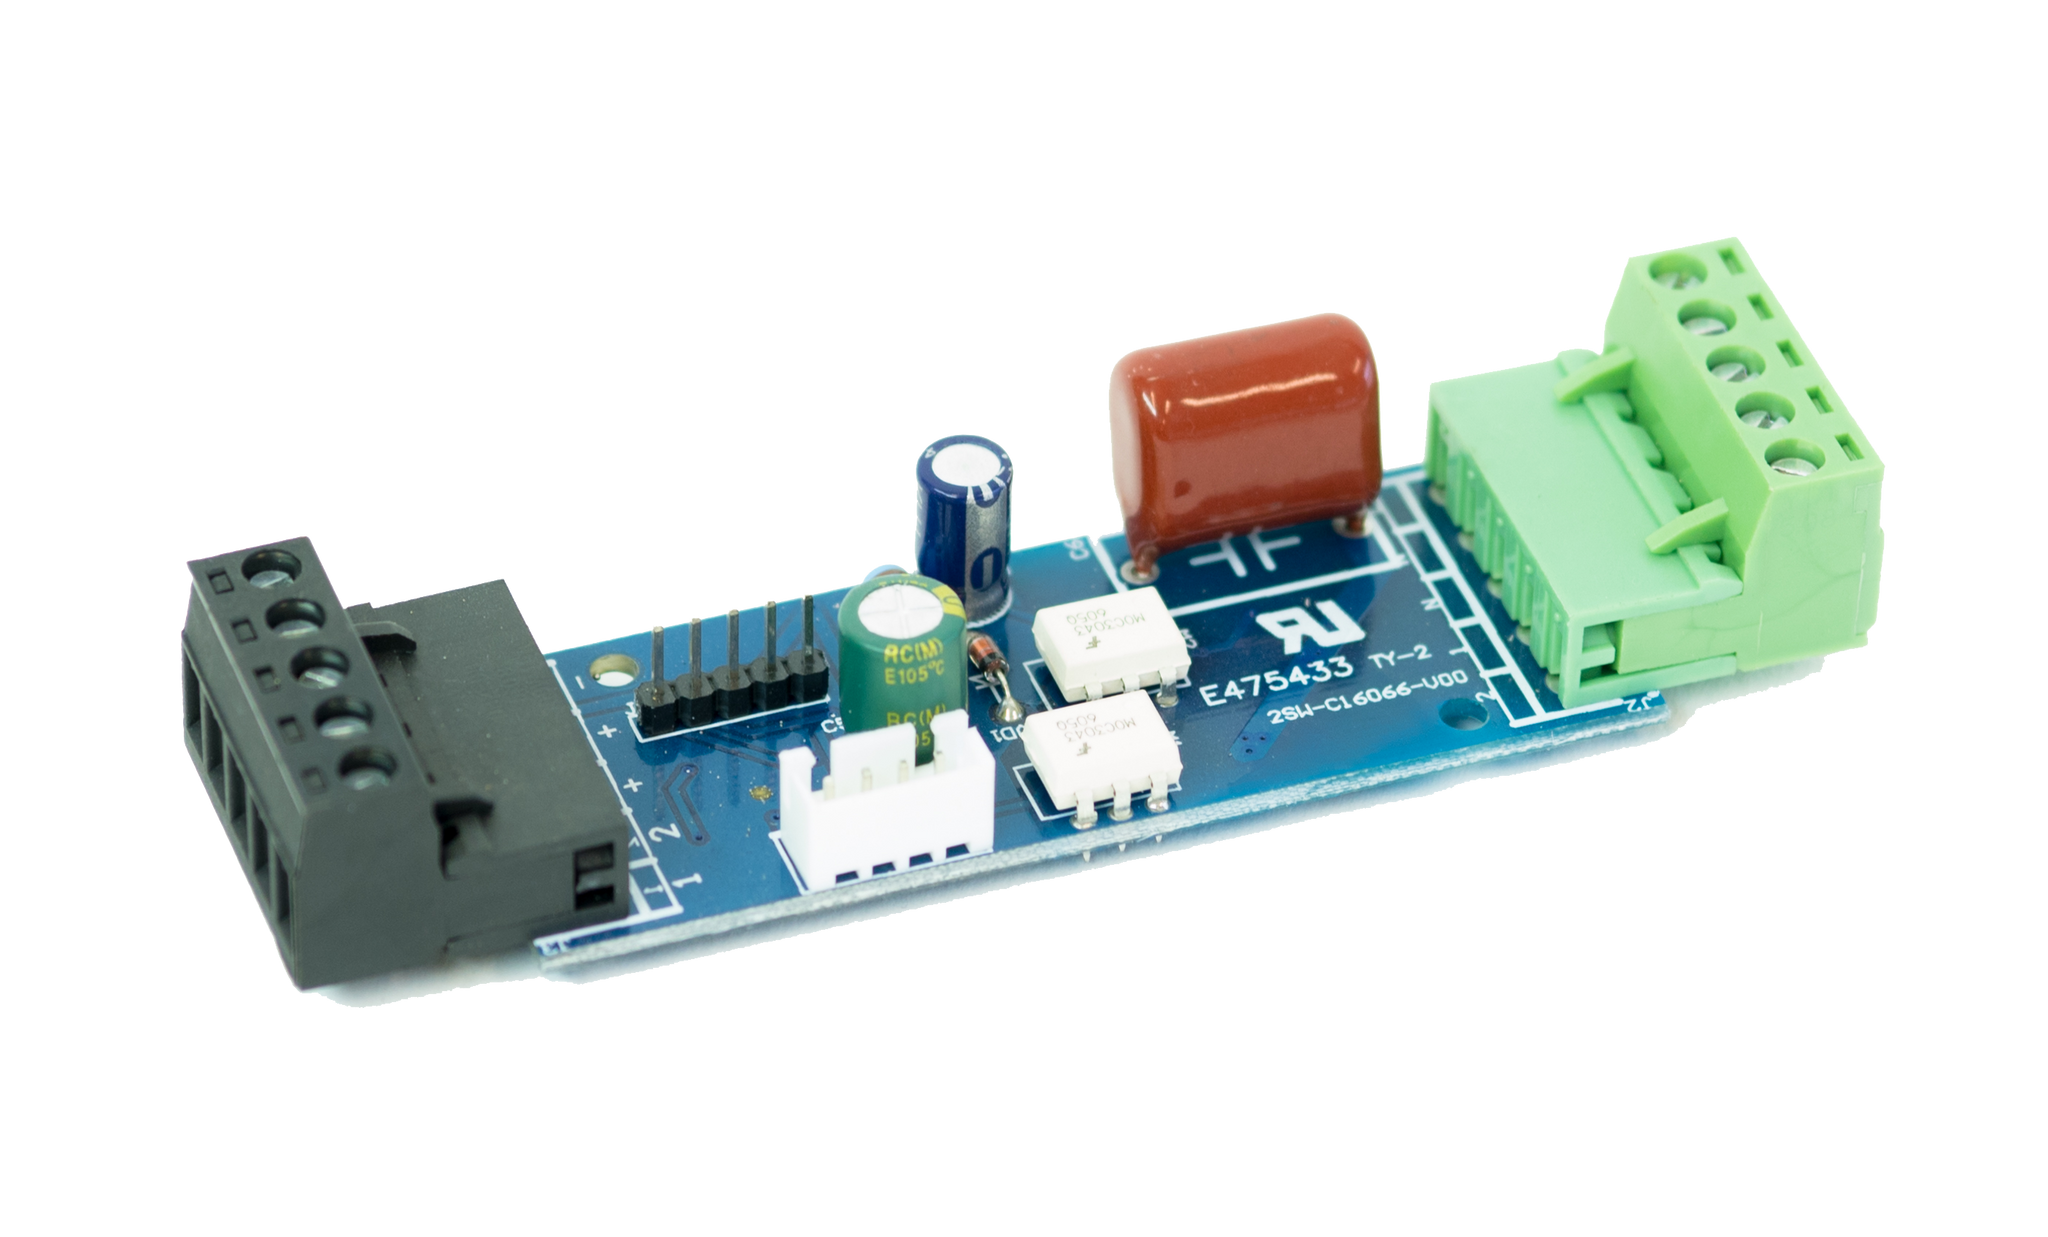 BNR BNR Alternating Flashing Controller for Wig-Wag Traffic Lights or Beacons - BNR Industrial